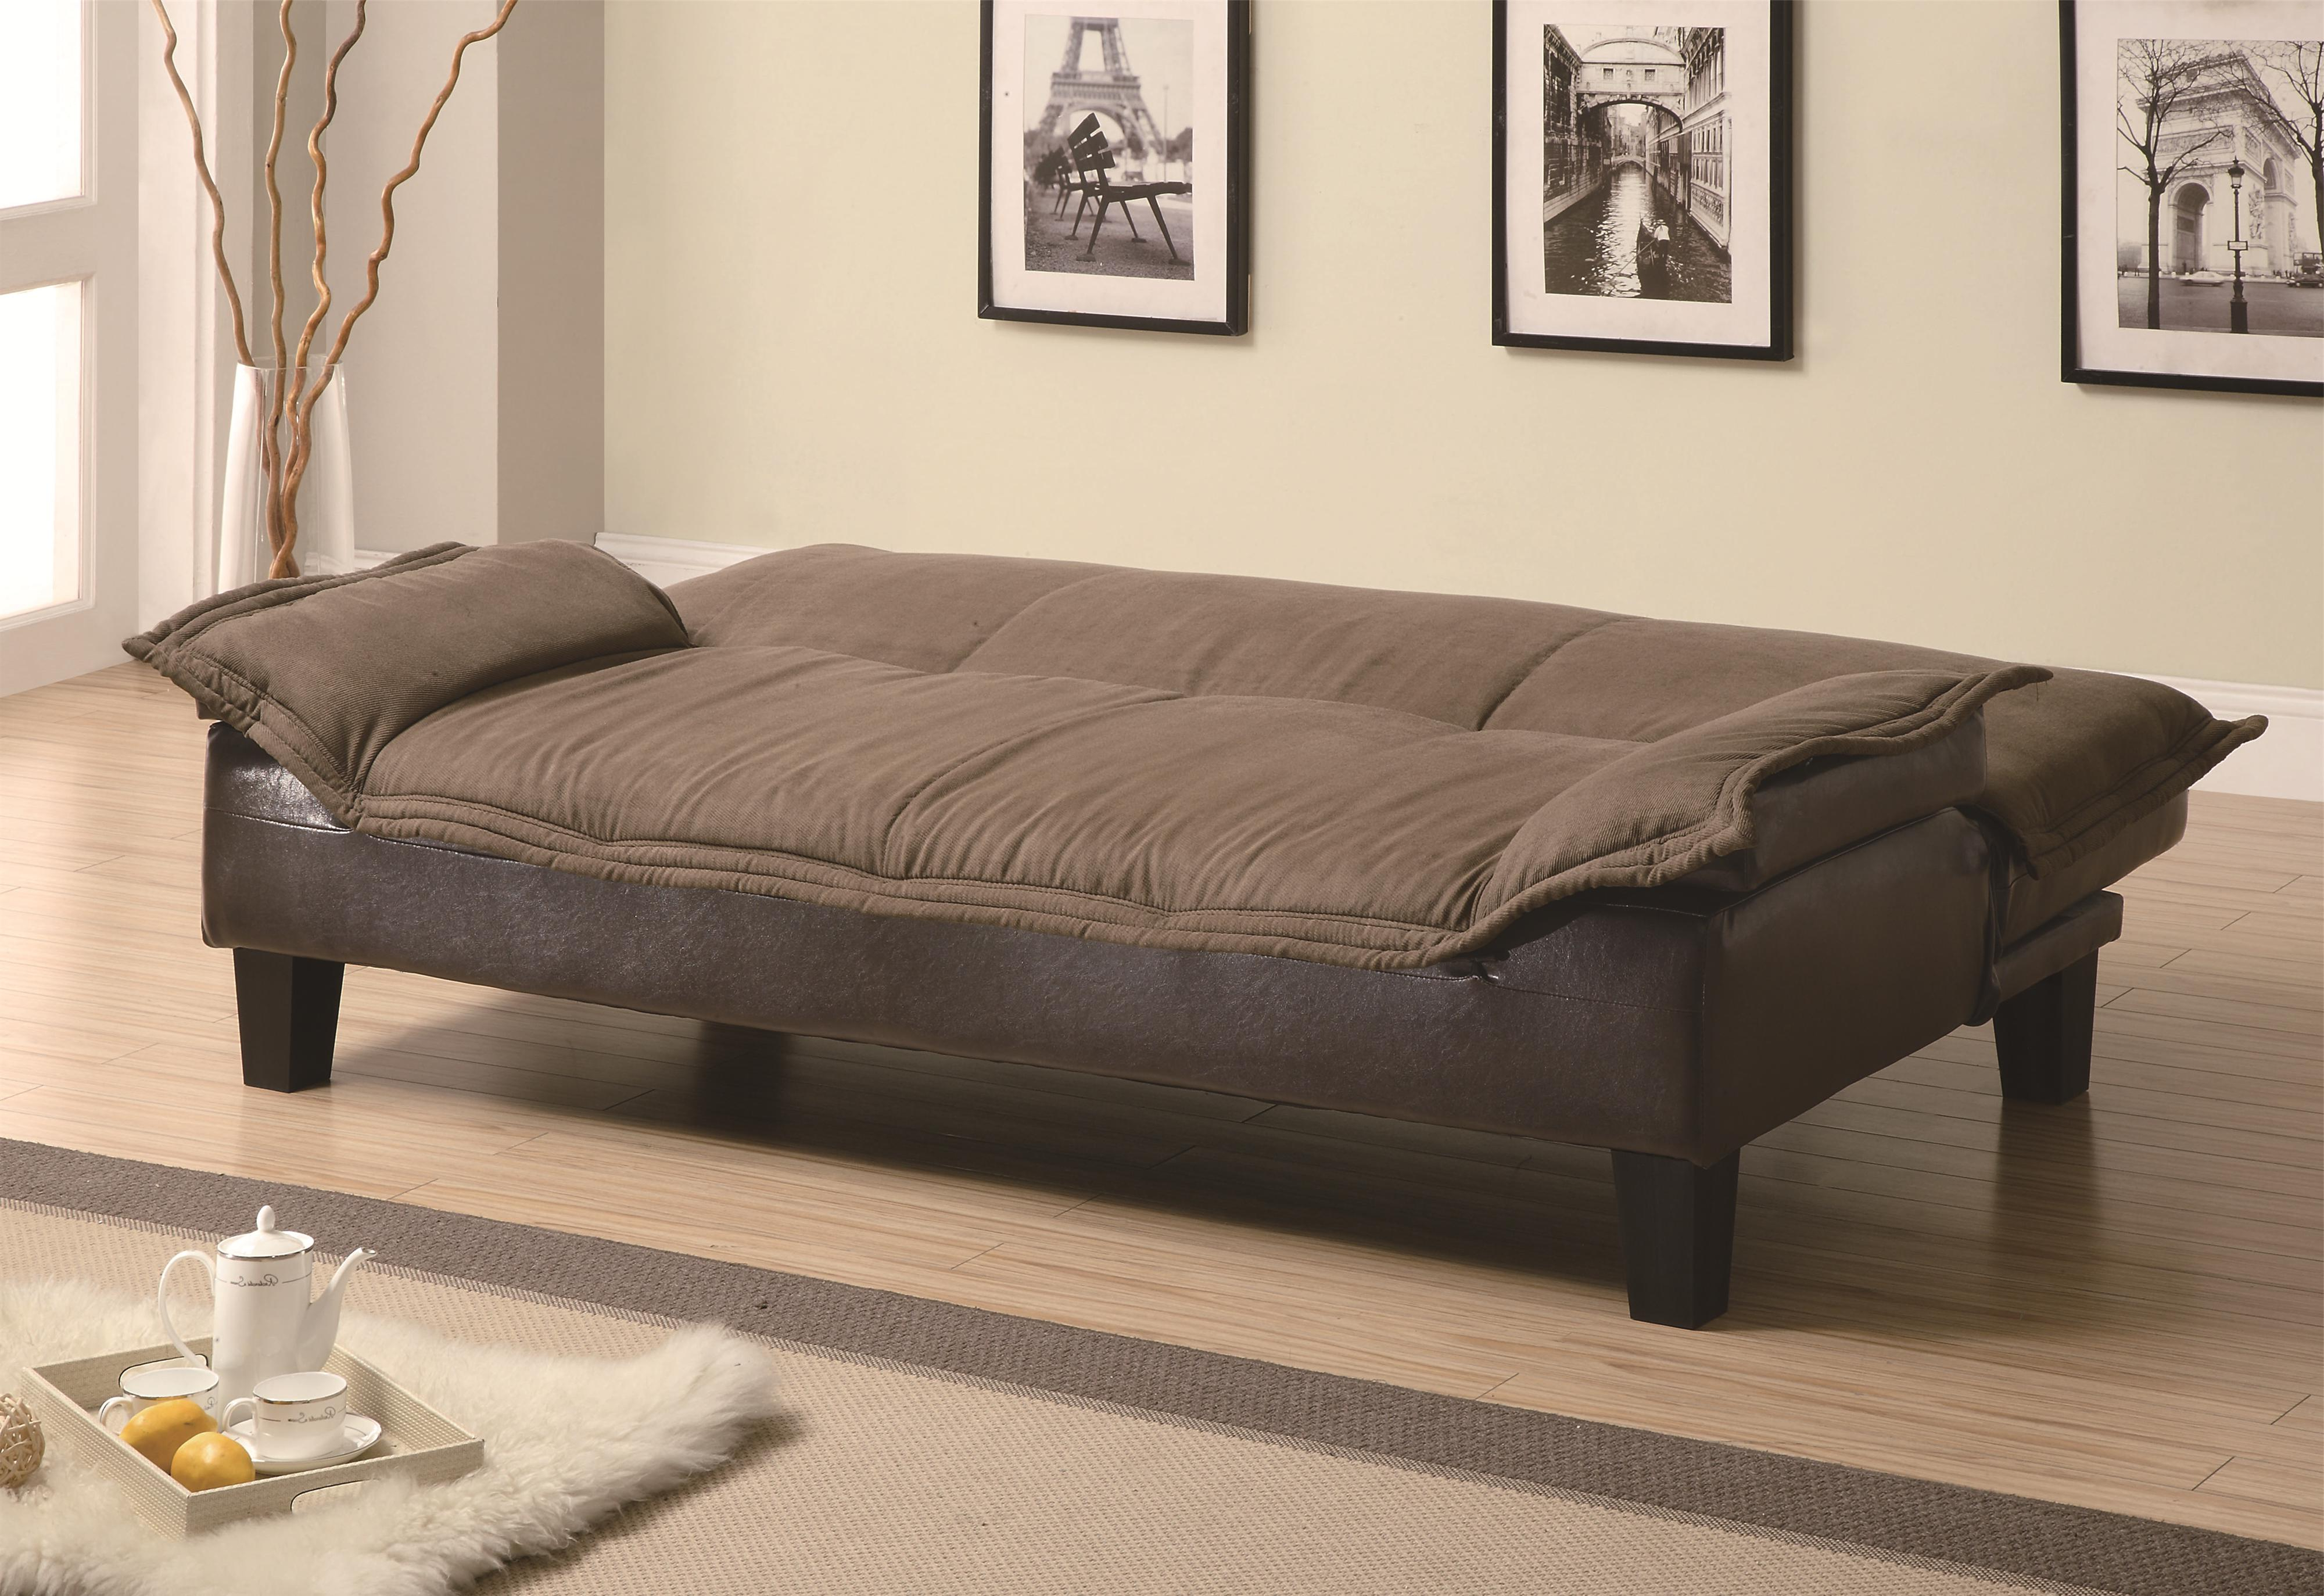 Coaster Sofa Beds And Futons Ratchet Back Sofa Bed With Dark Brown With Regard To Fashionable Sofa Beds Chairs (View 19 of 20)